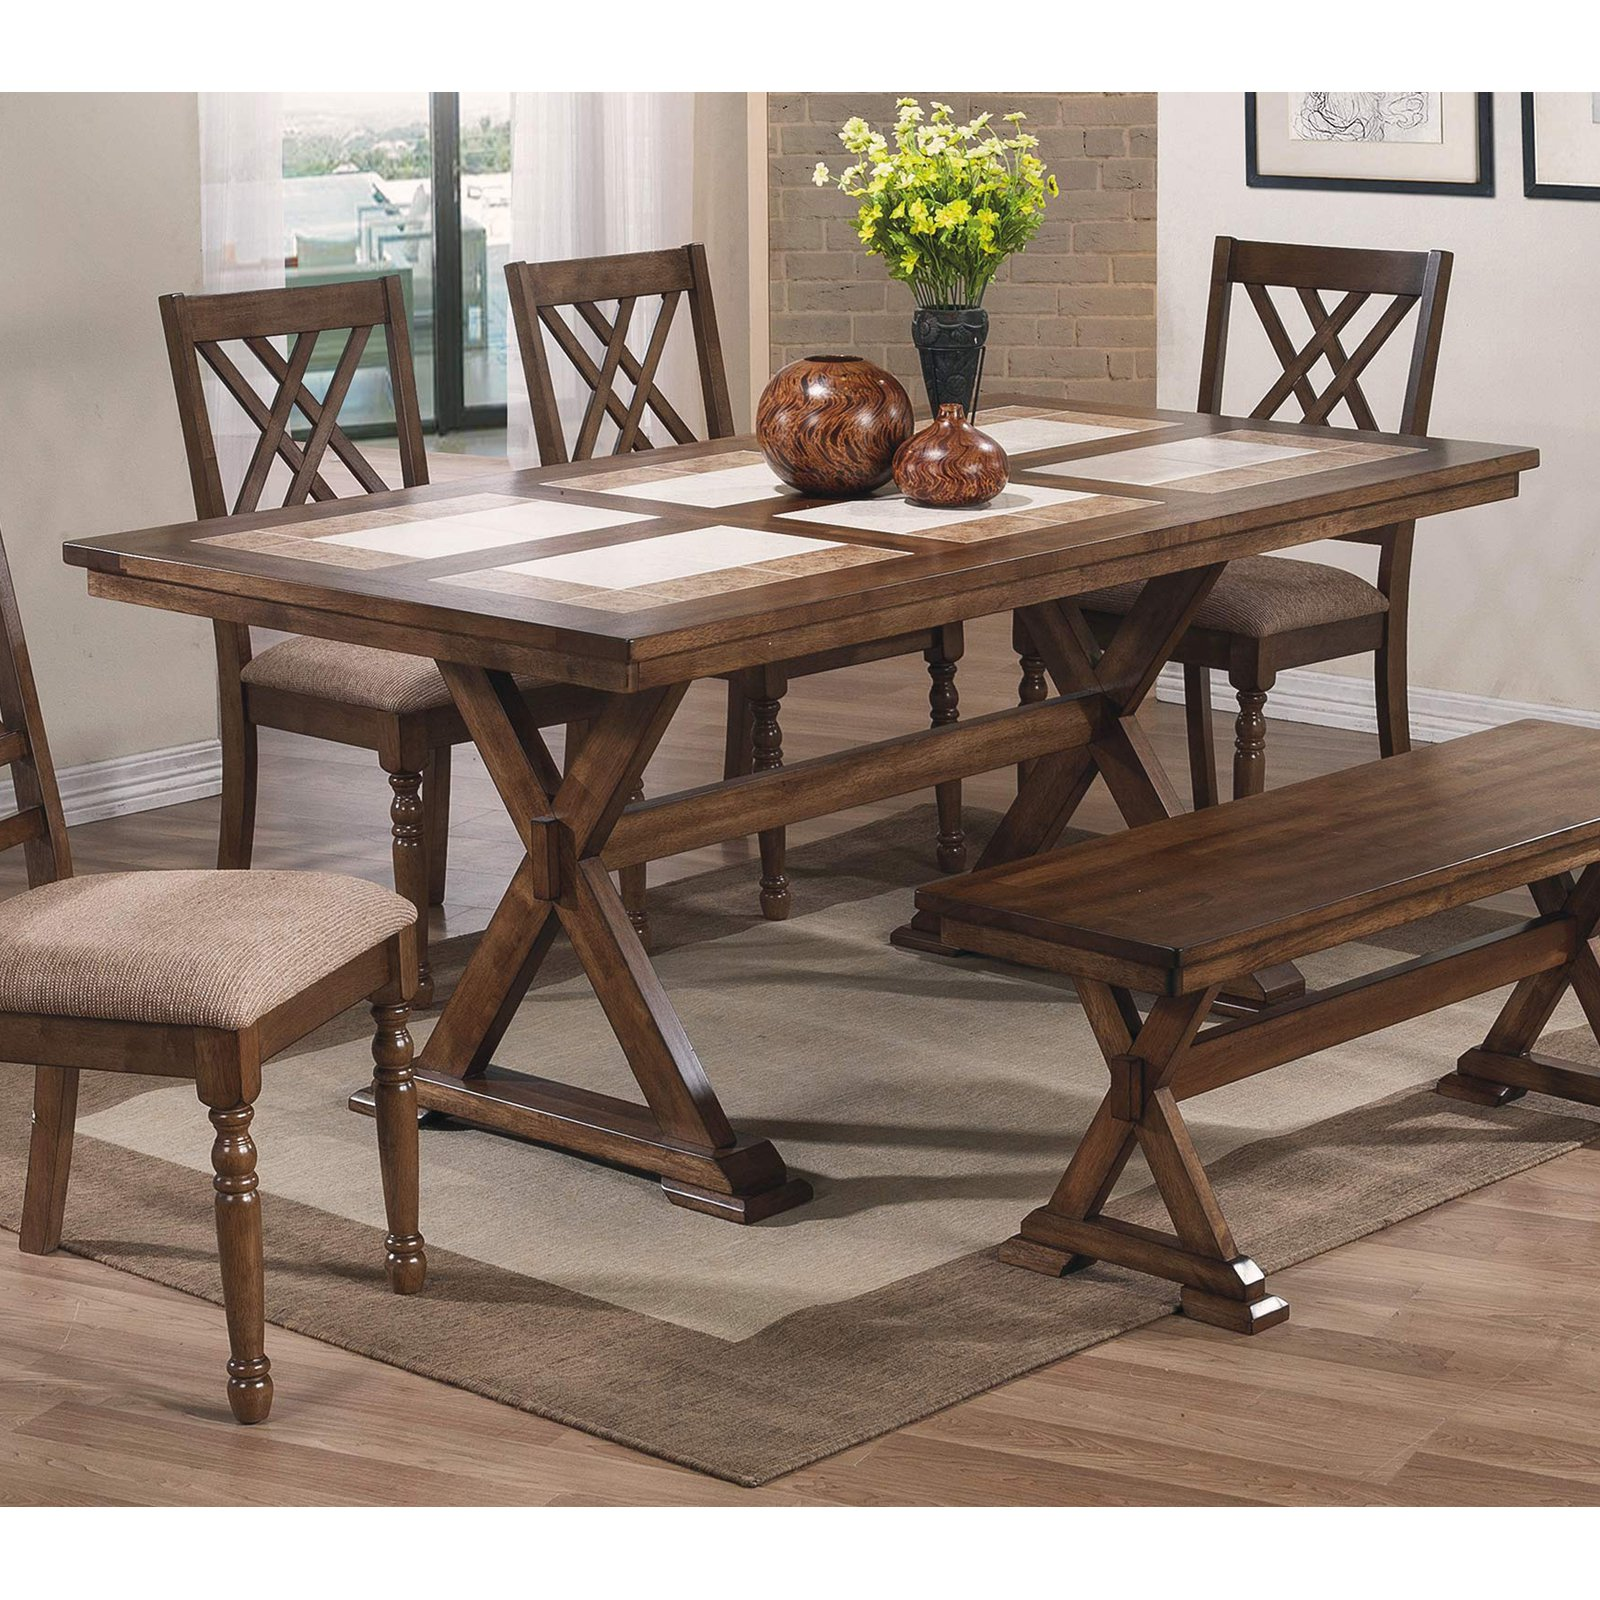 Winners Only Florence Tile Top X-Leg Dining Table Table